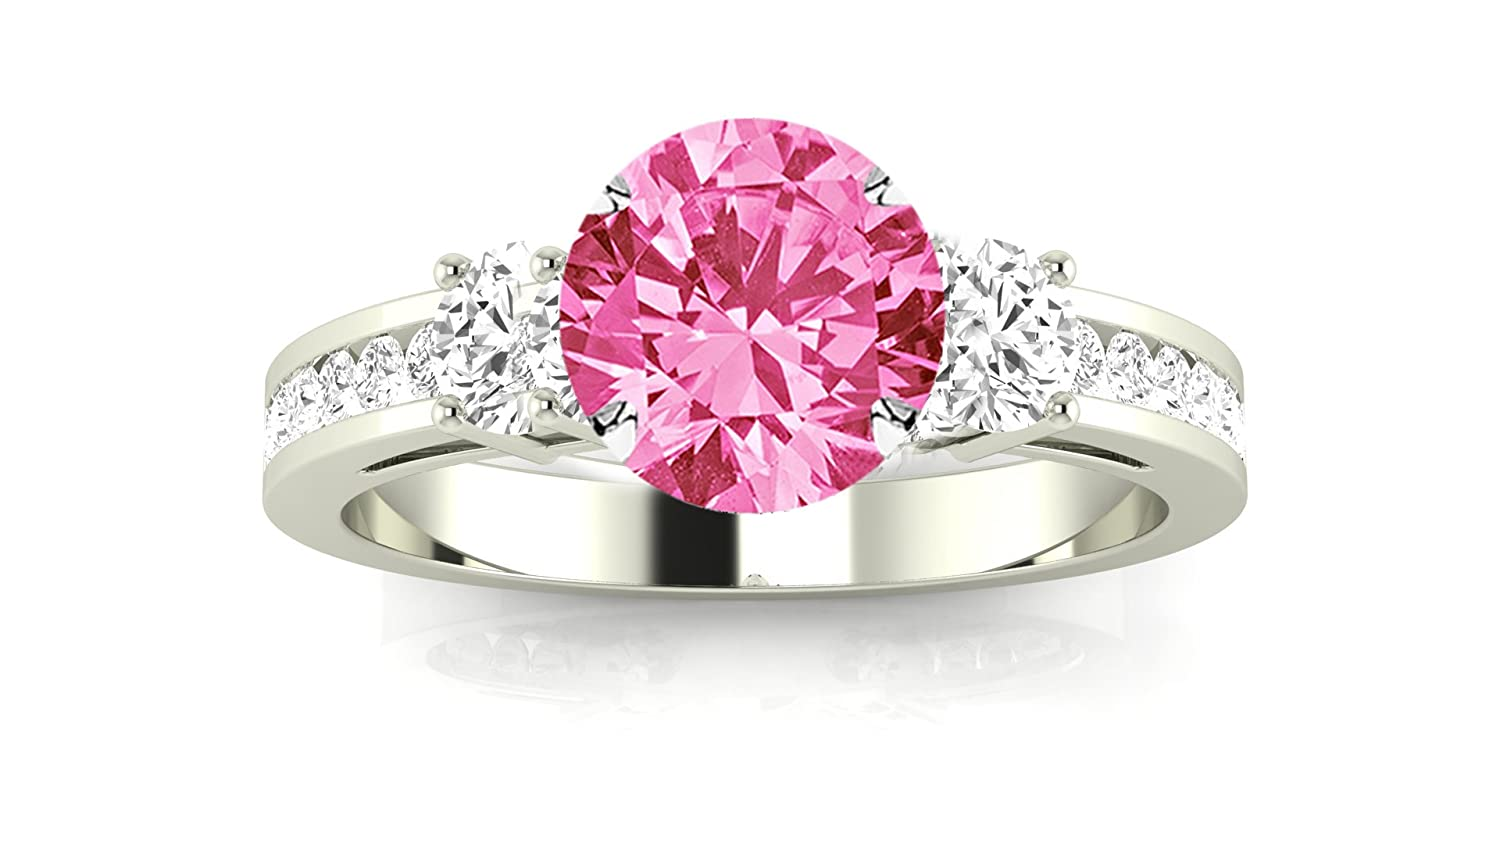 Channel Set 3 Three Stone Diamond Engagement Ring with a 1.5 Carat ...